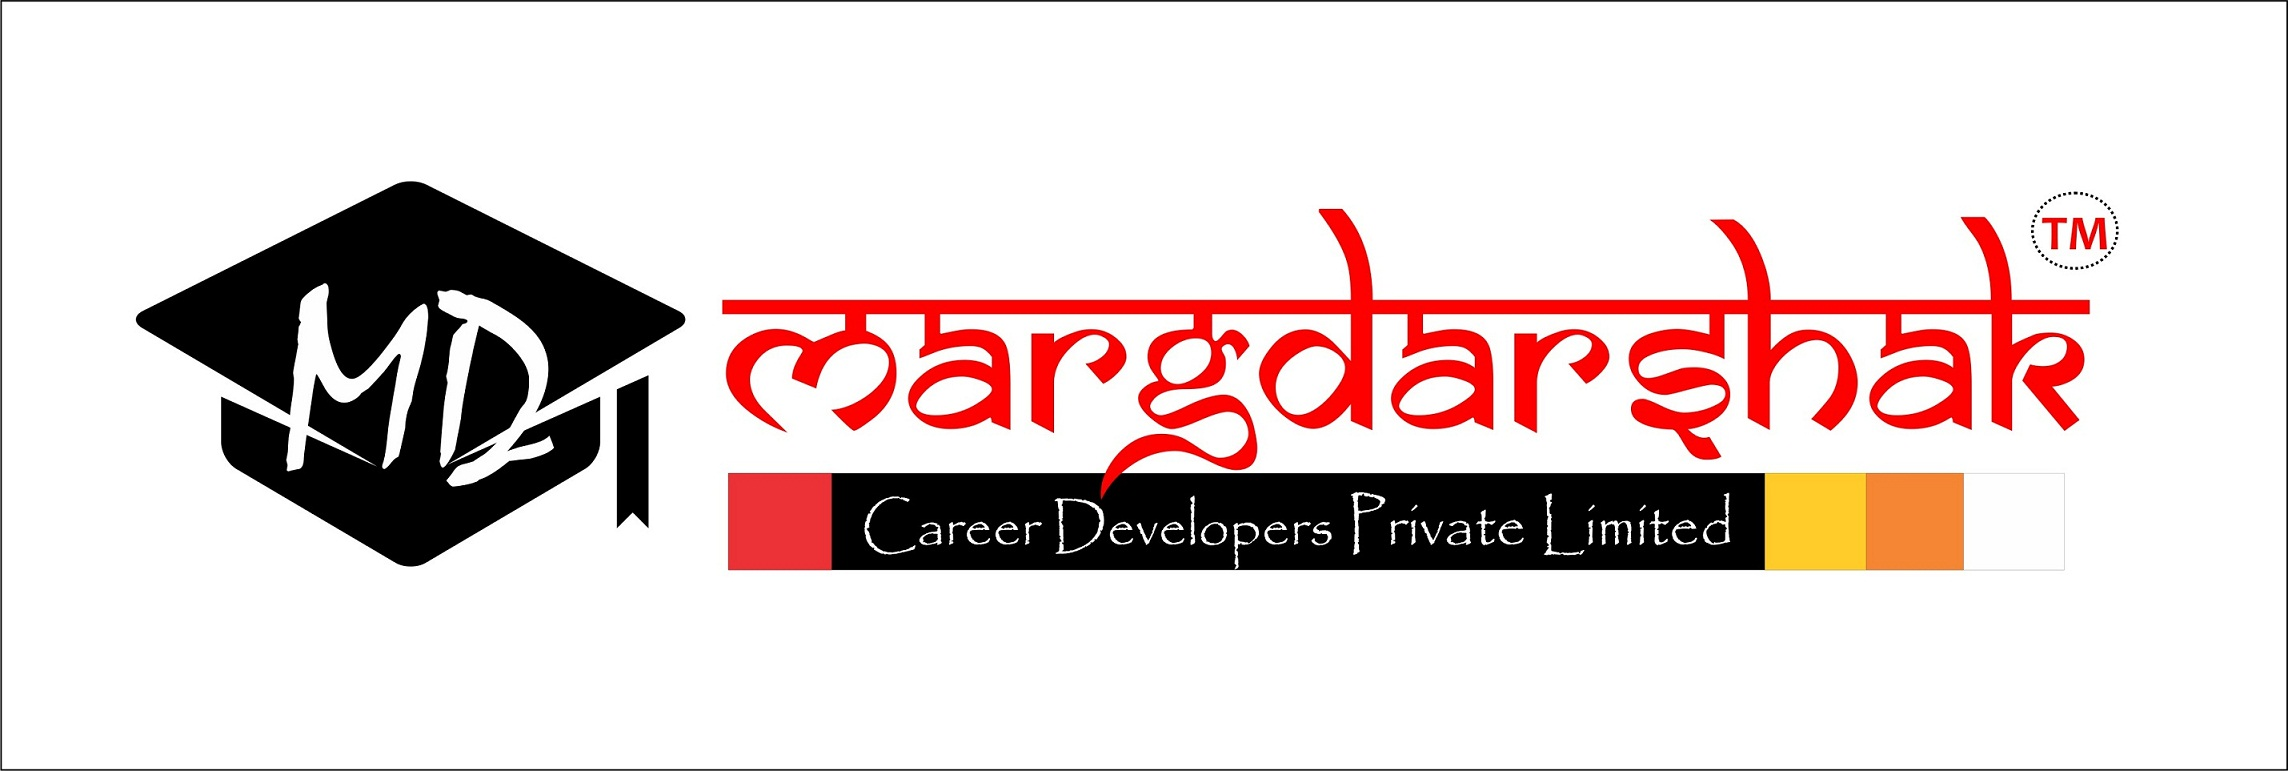 graphic designer jobs graphic designer job openings in margdarshak career developers pvt logo